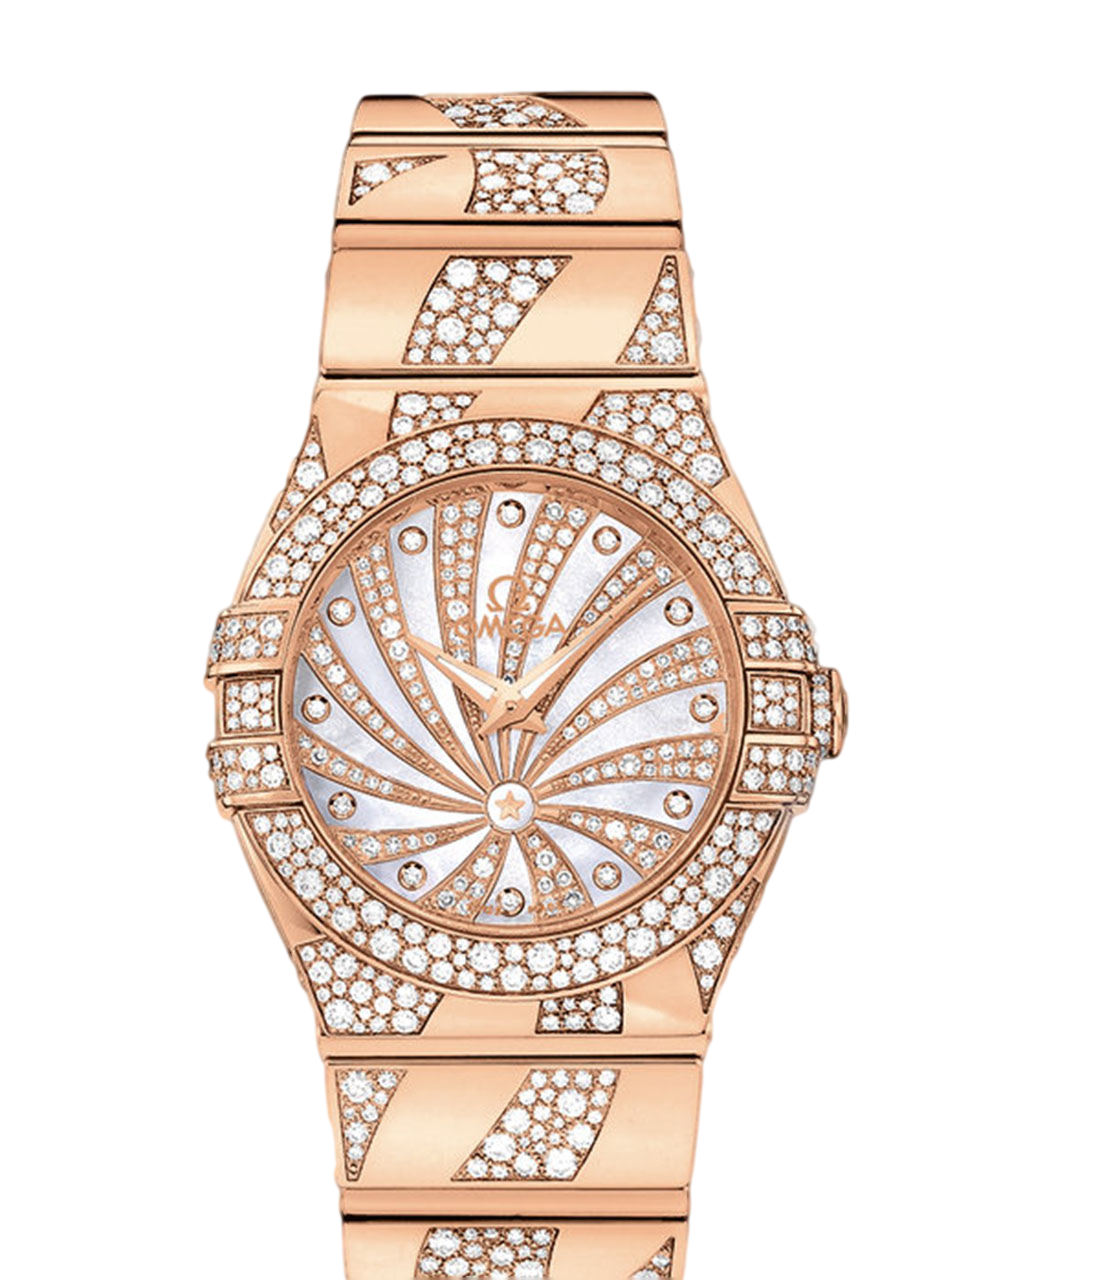 Omega Constellation Small Women's Watch, Model Number 123.55.24.60.55.011 features Quartz Movement. Made from 18K Rose Gold This Watch  has a Diamond Pave dial, it's 18K Rose Gold & Diamonds bracelet is adjustable from 7.5 in (19.05 cm) $39,858.00